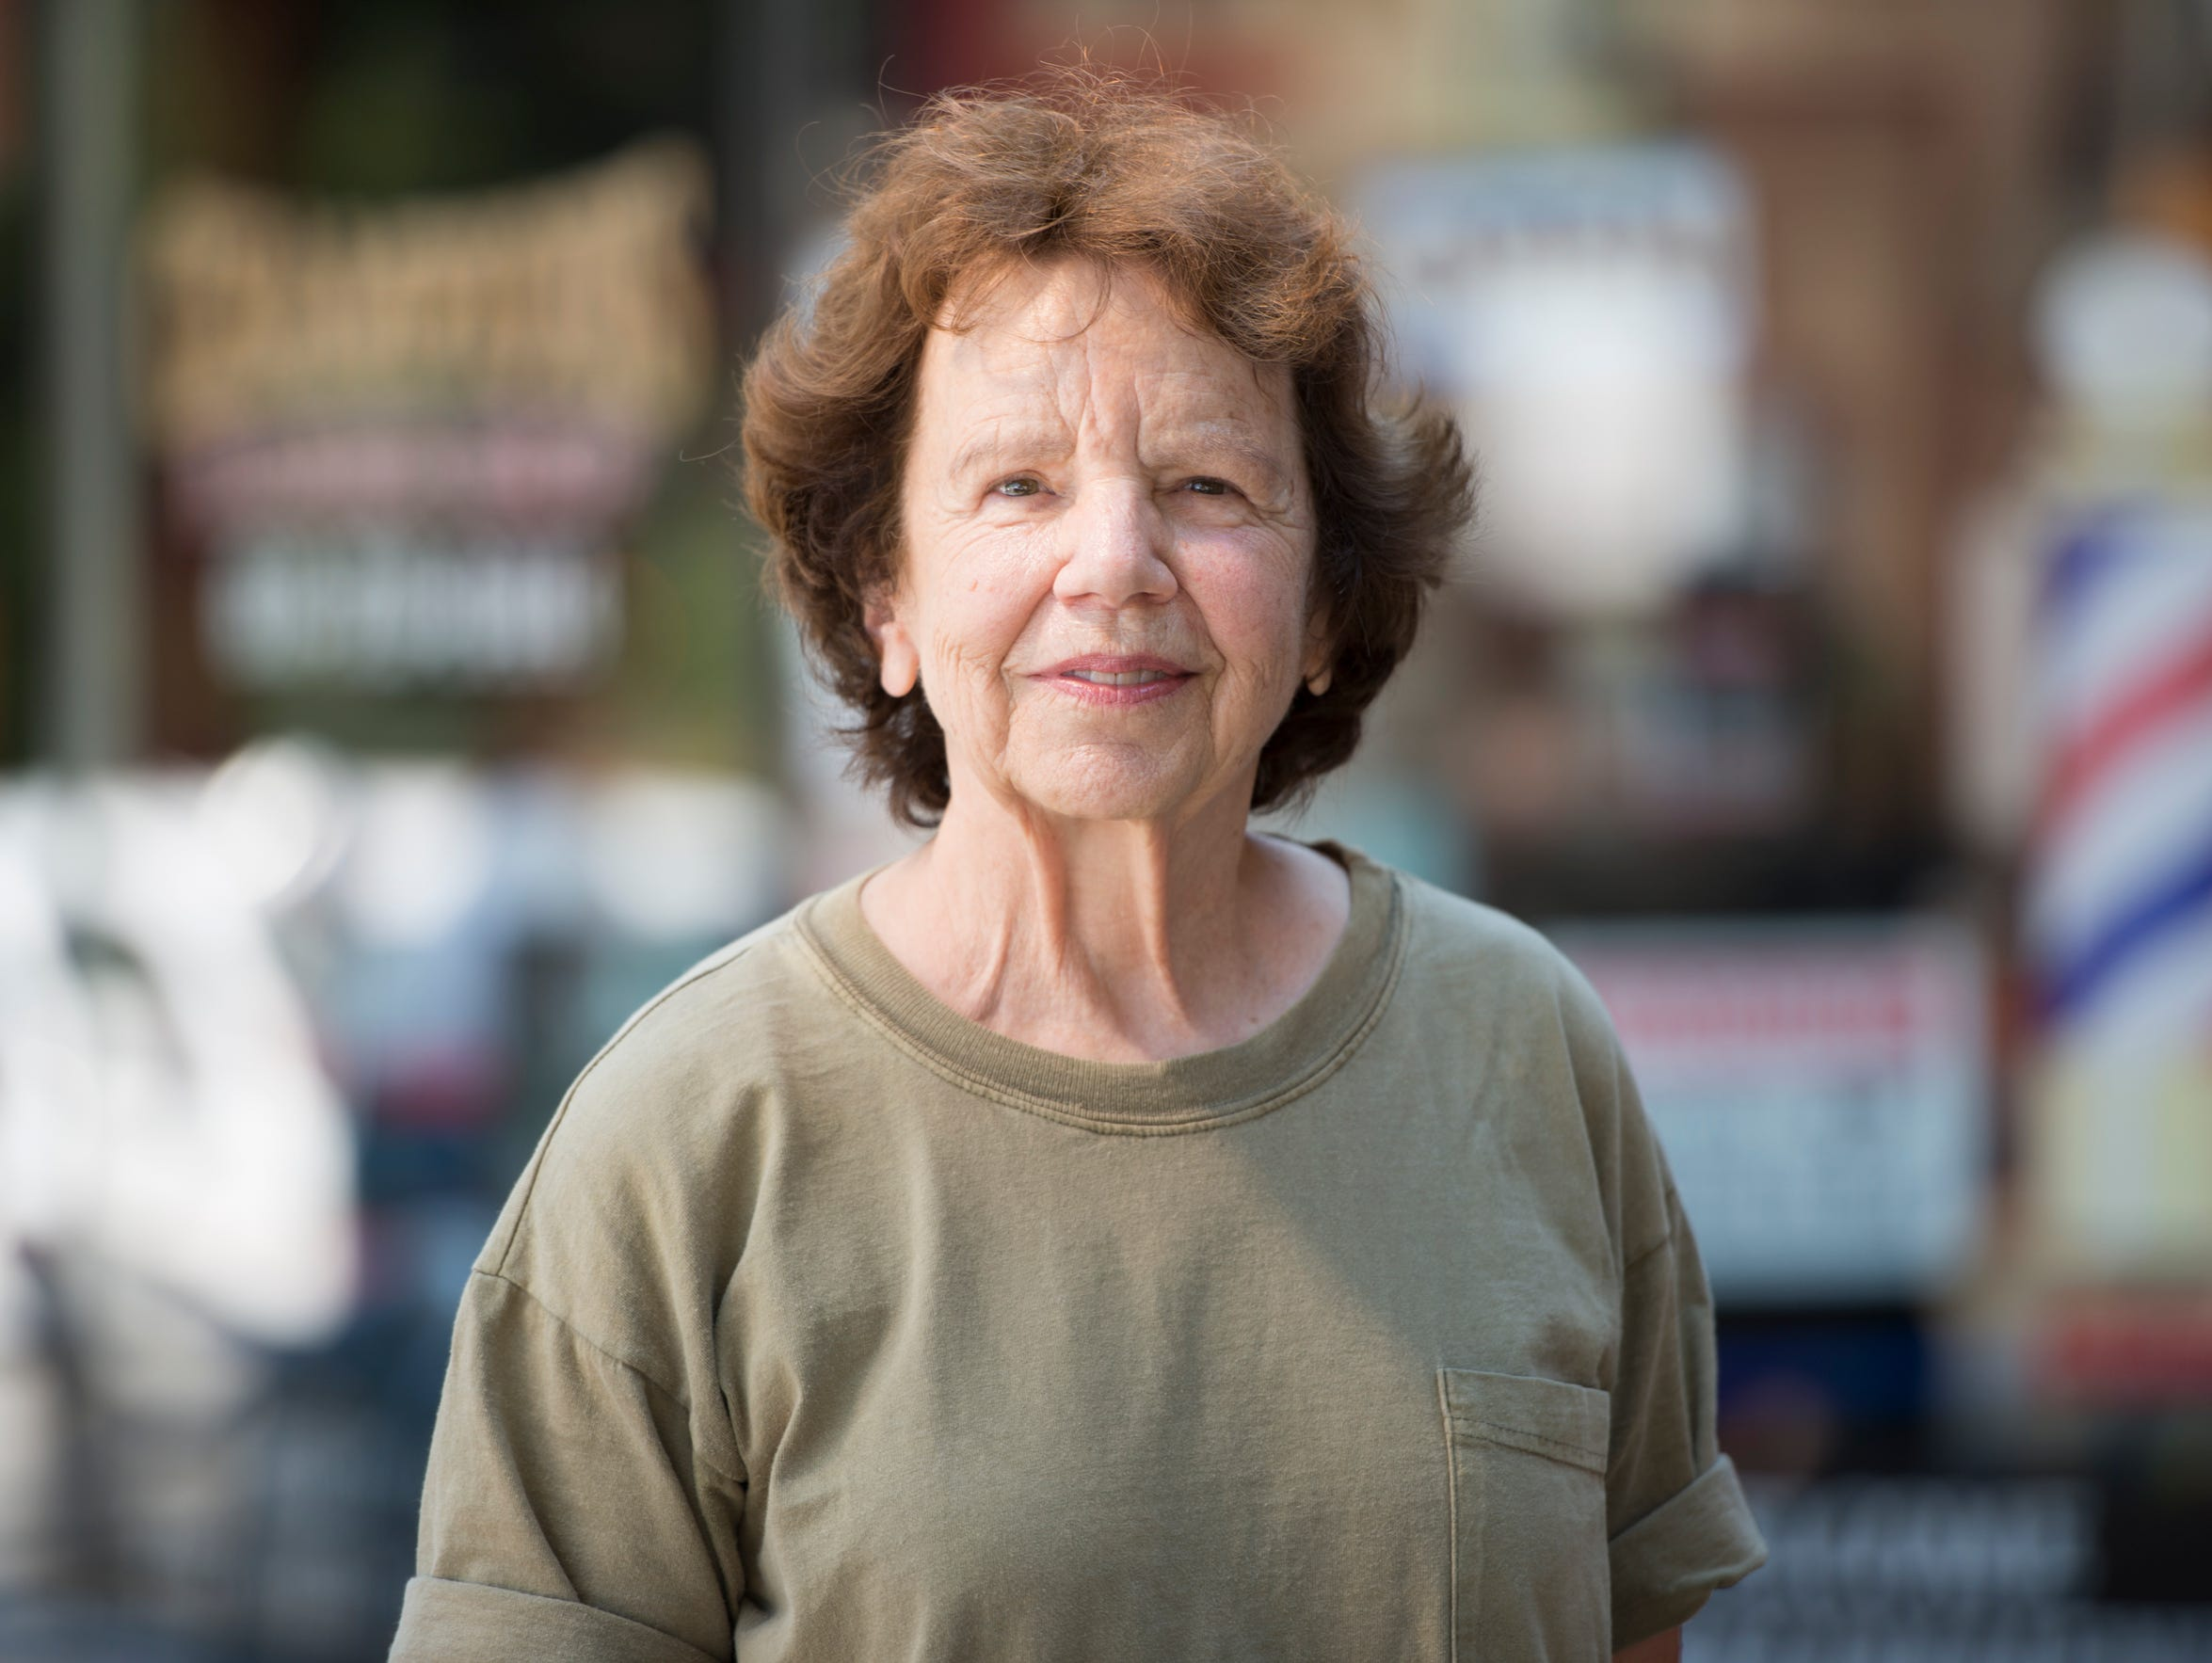 Margot McKee, a real estate agent in Chester County,